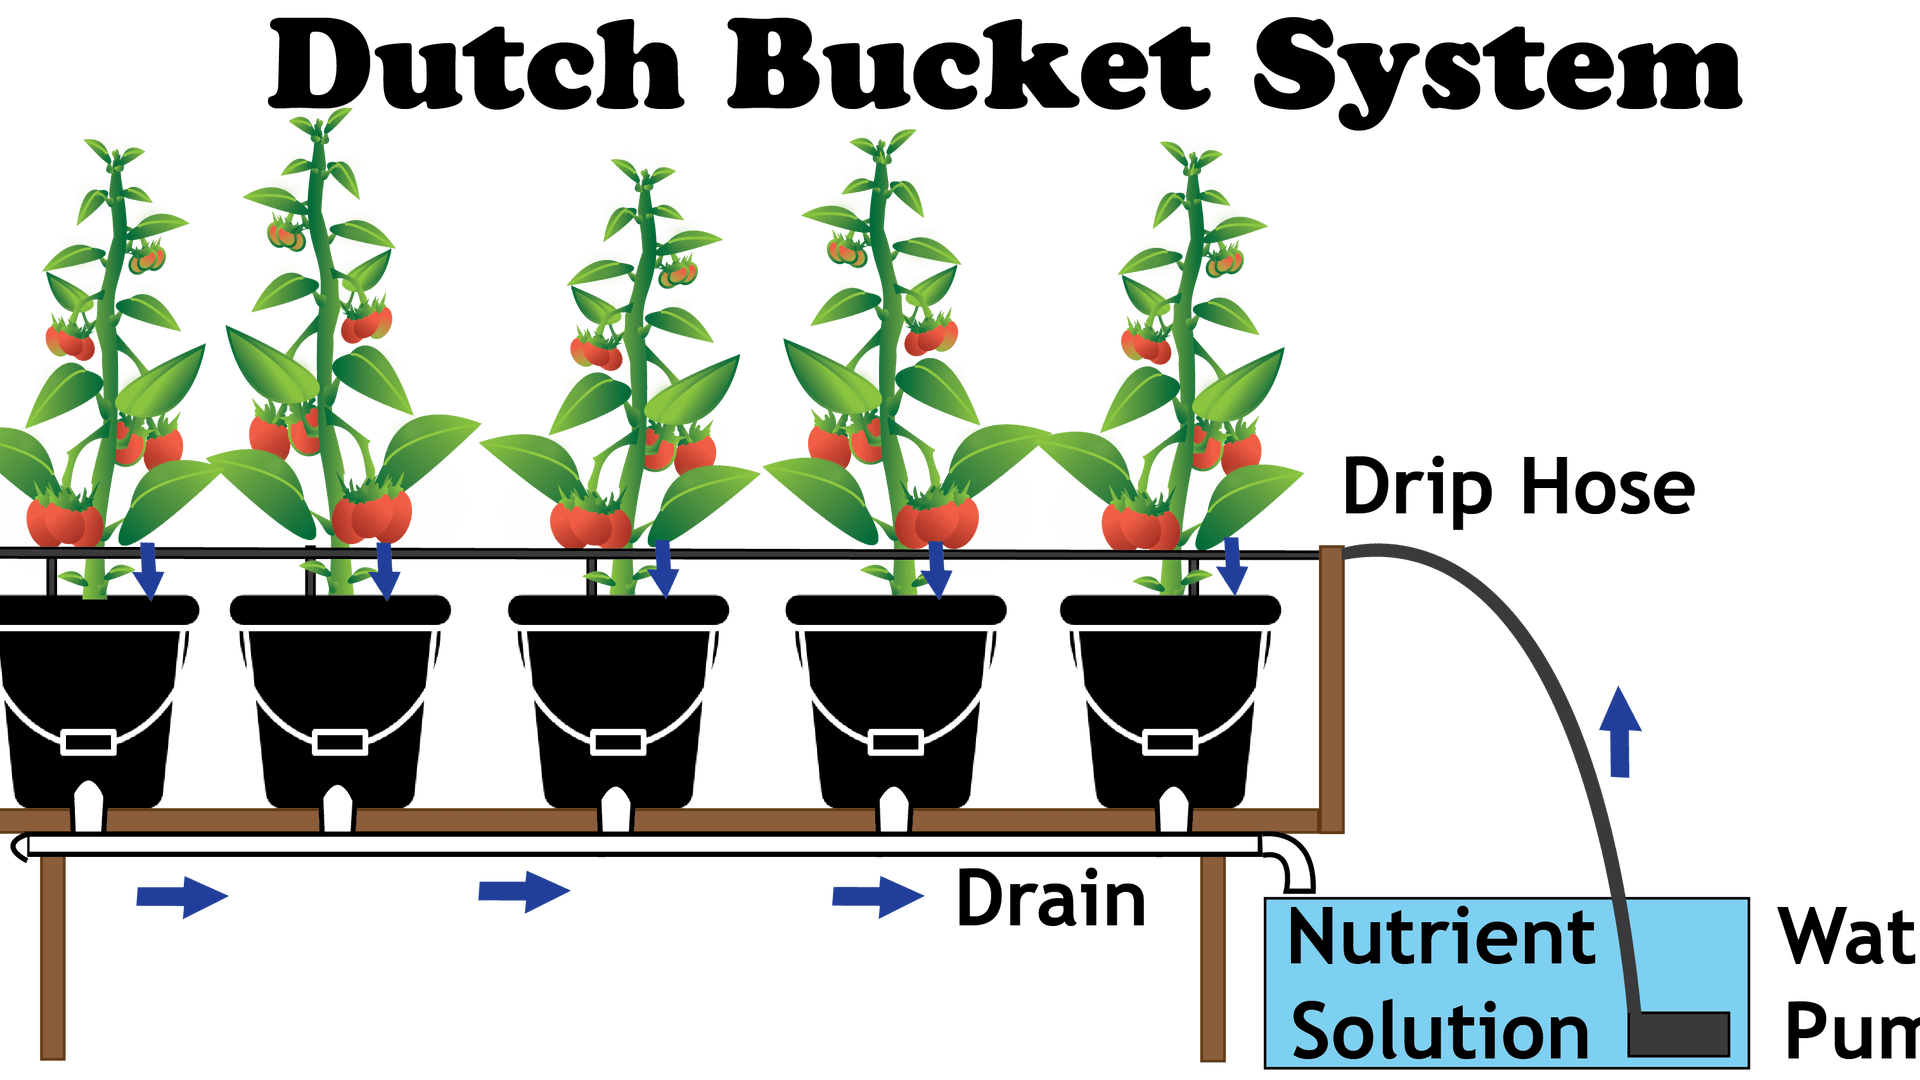 dutch-bucket-system